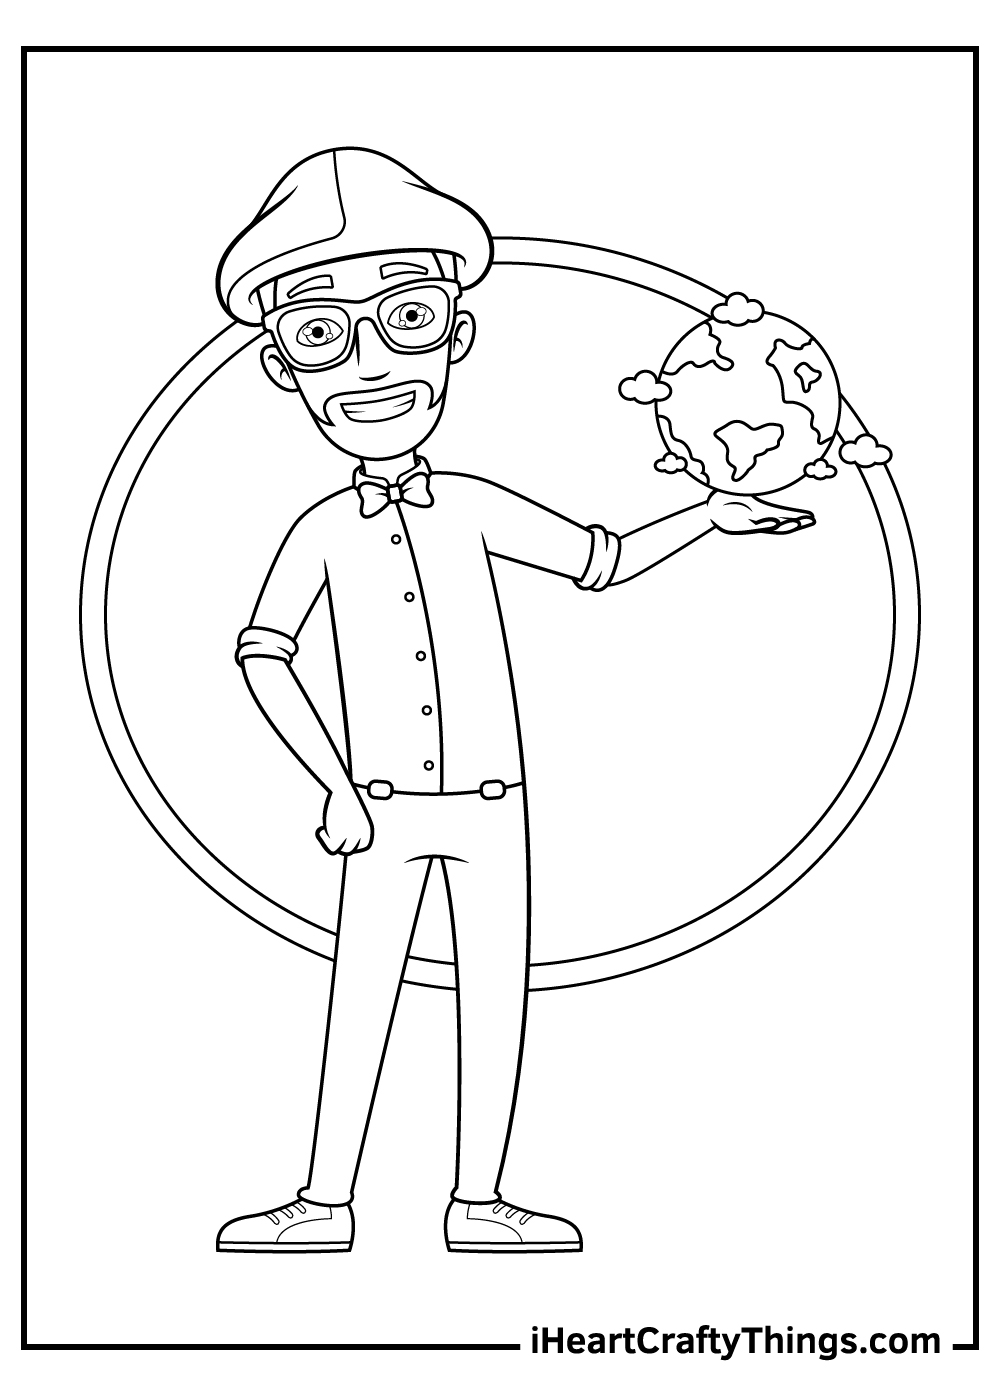 free printable blippi character coloring pages